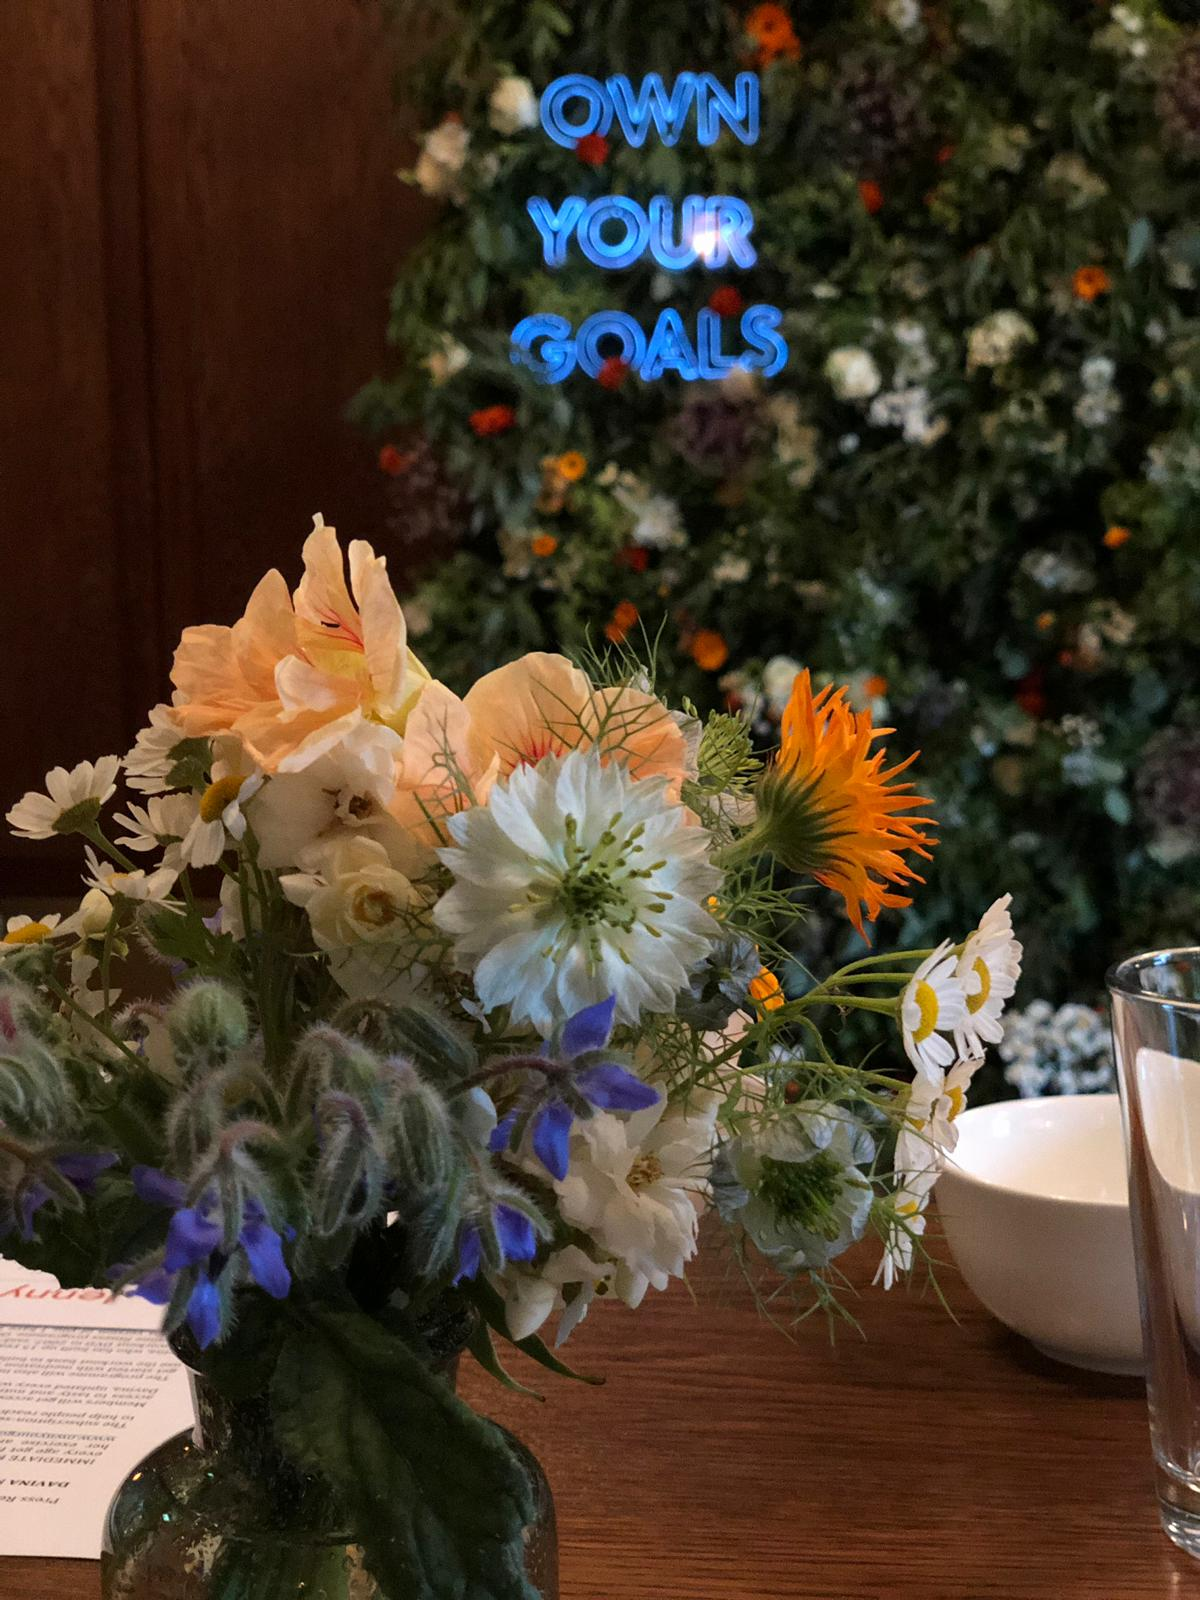 Nice bunch ethical floral design studio flower garden by Sula White City House Davina McCall Own Your Goals